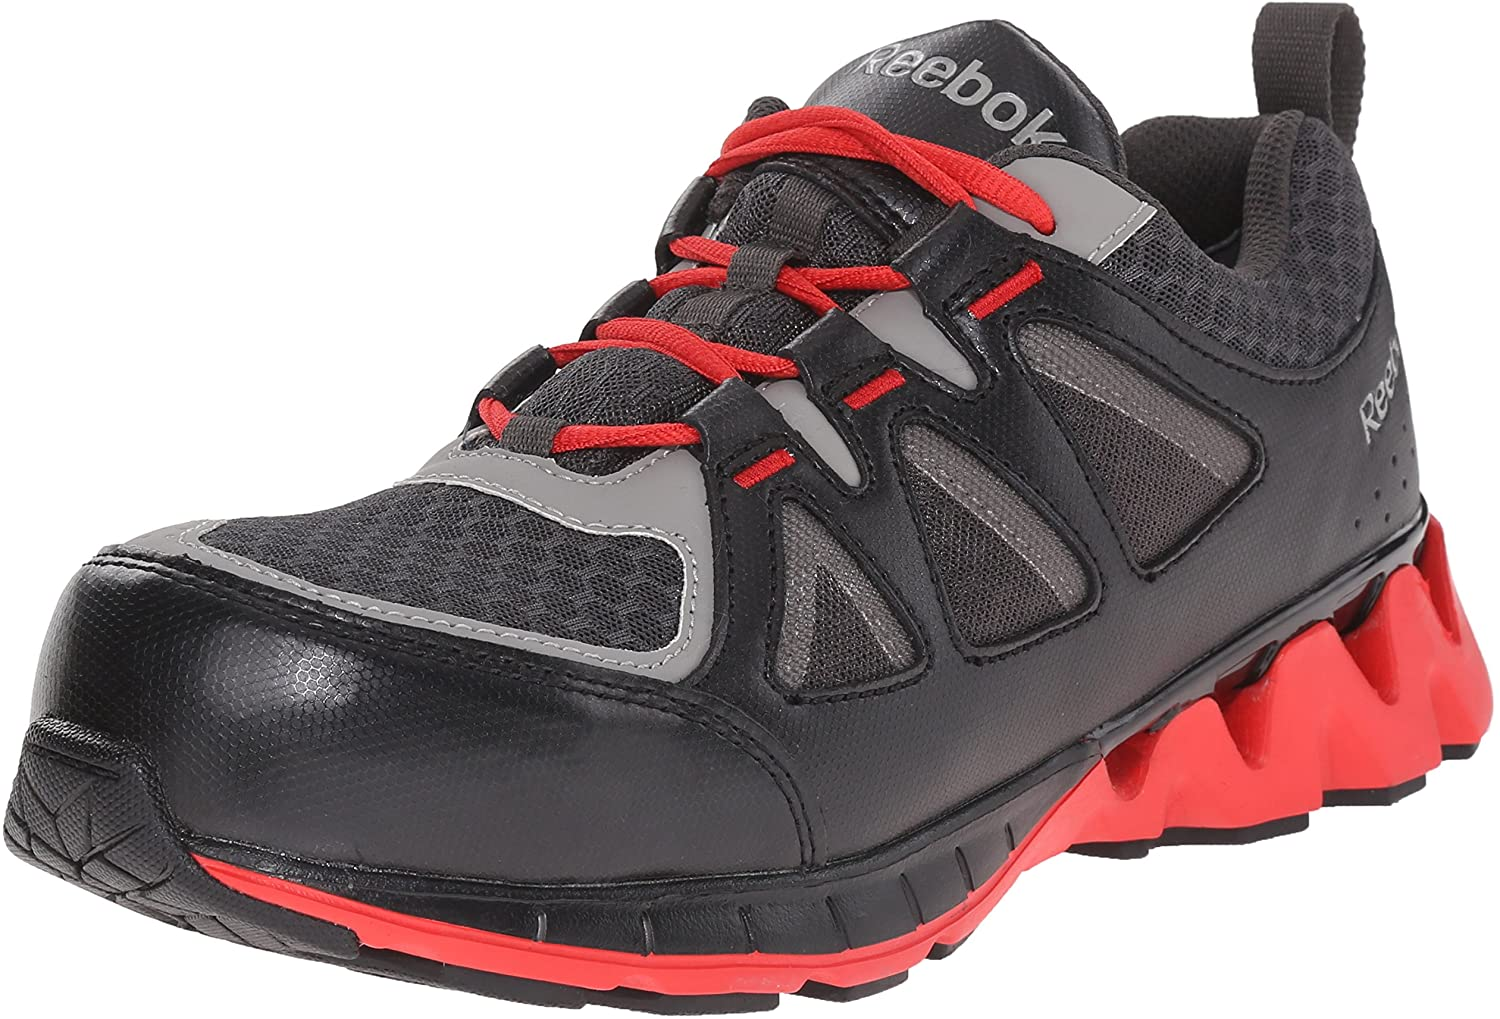 Reebok Work Men's Zigkick Work RB3000 Athletic Safety Shoe